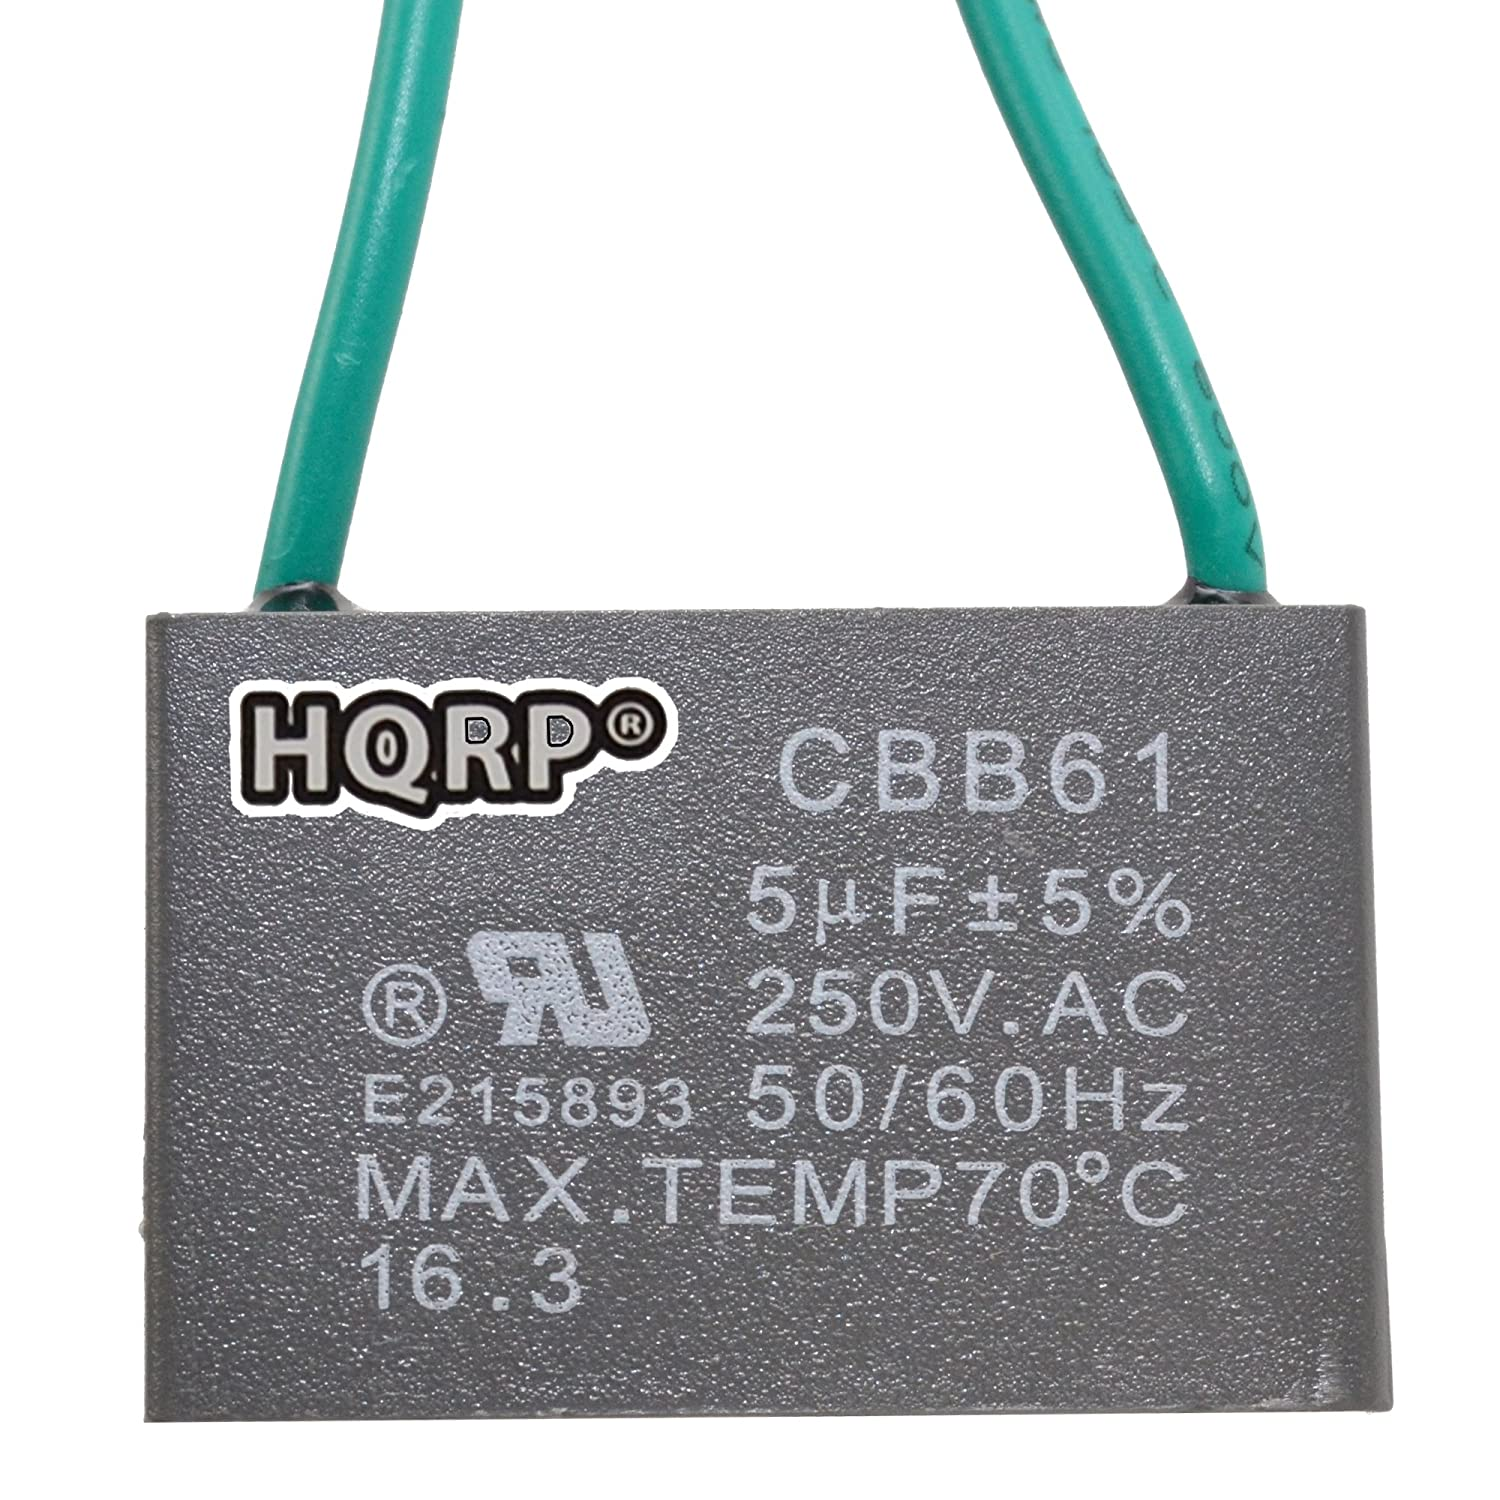 Com Hqrp Ceiling Fan Capacitor Cbb61 5uf 2 Wire Plus Coaster Home Kitchen